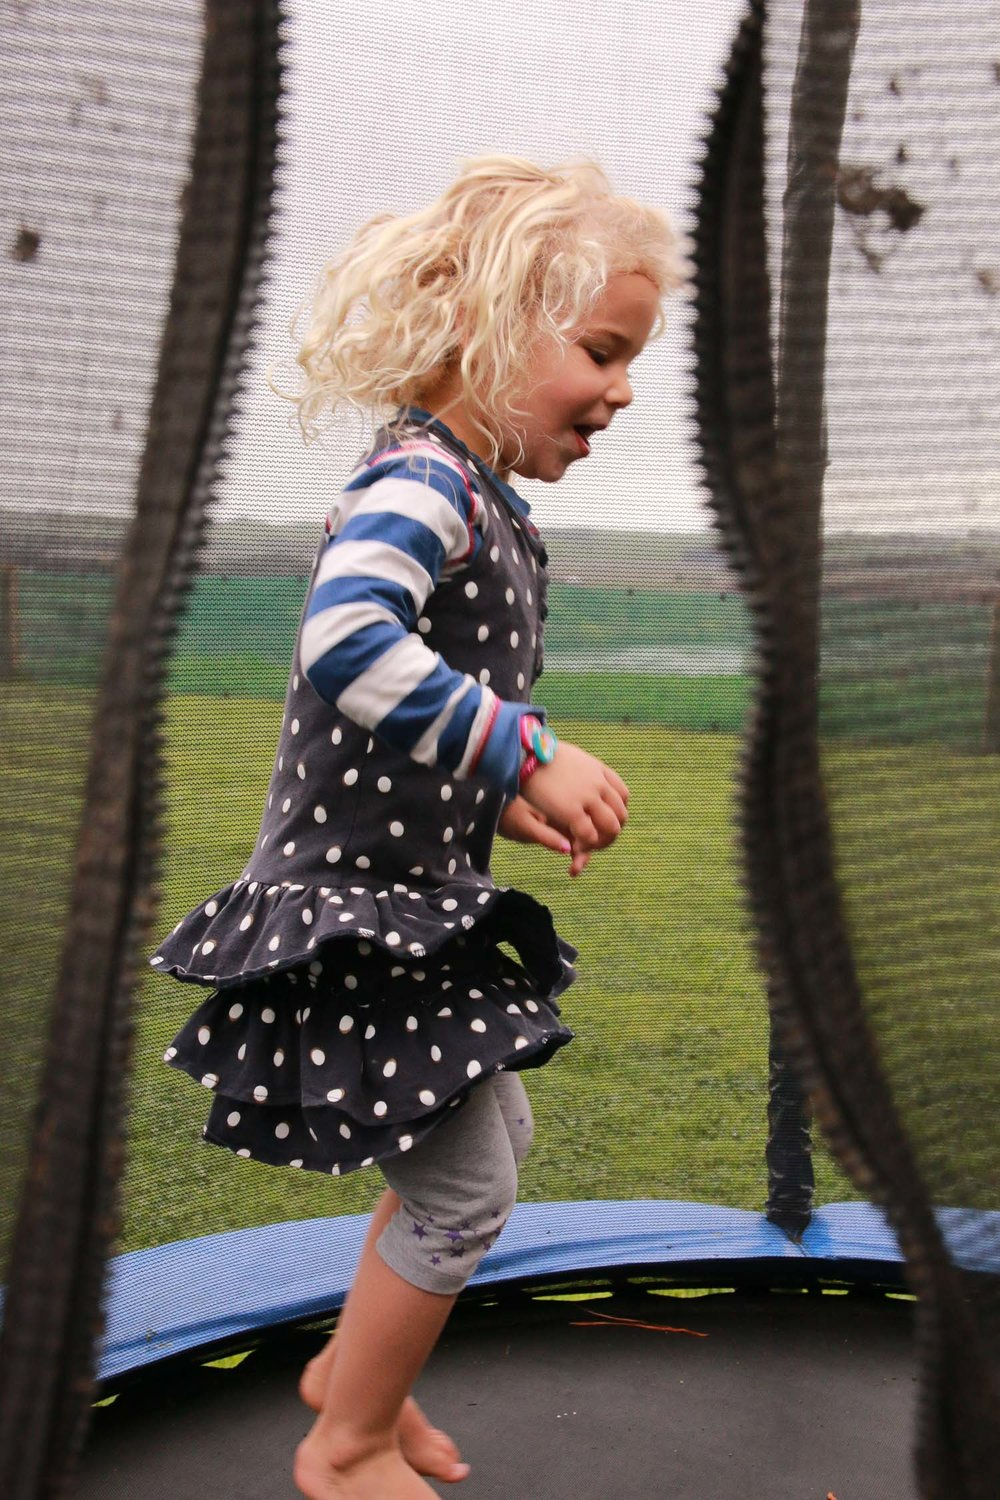 blonde-girl-jumping-on-trampoline-wearing-dress.jpg